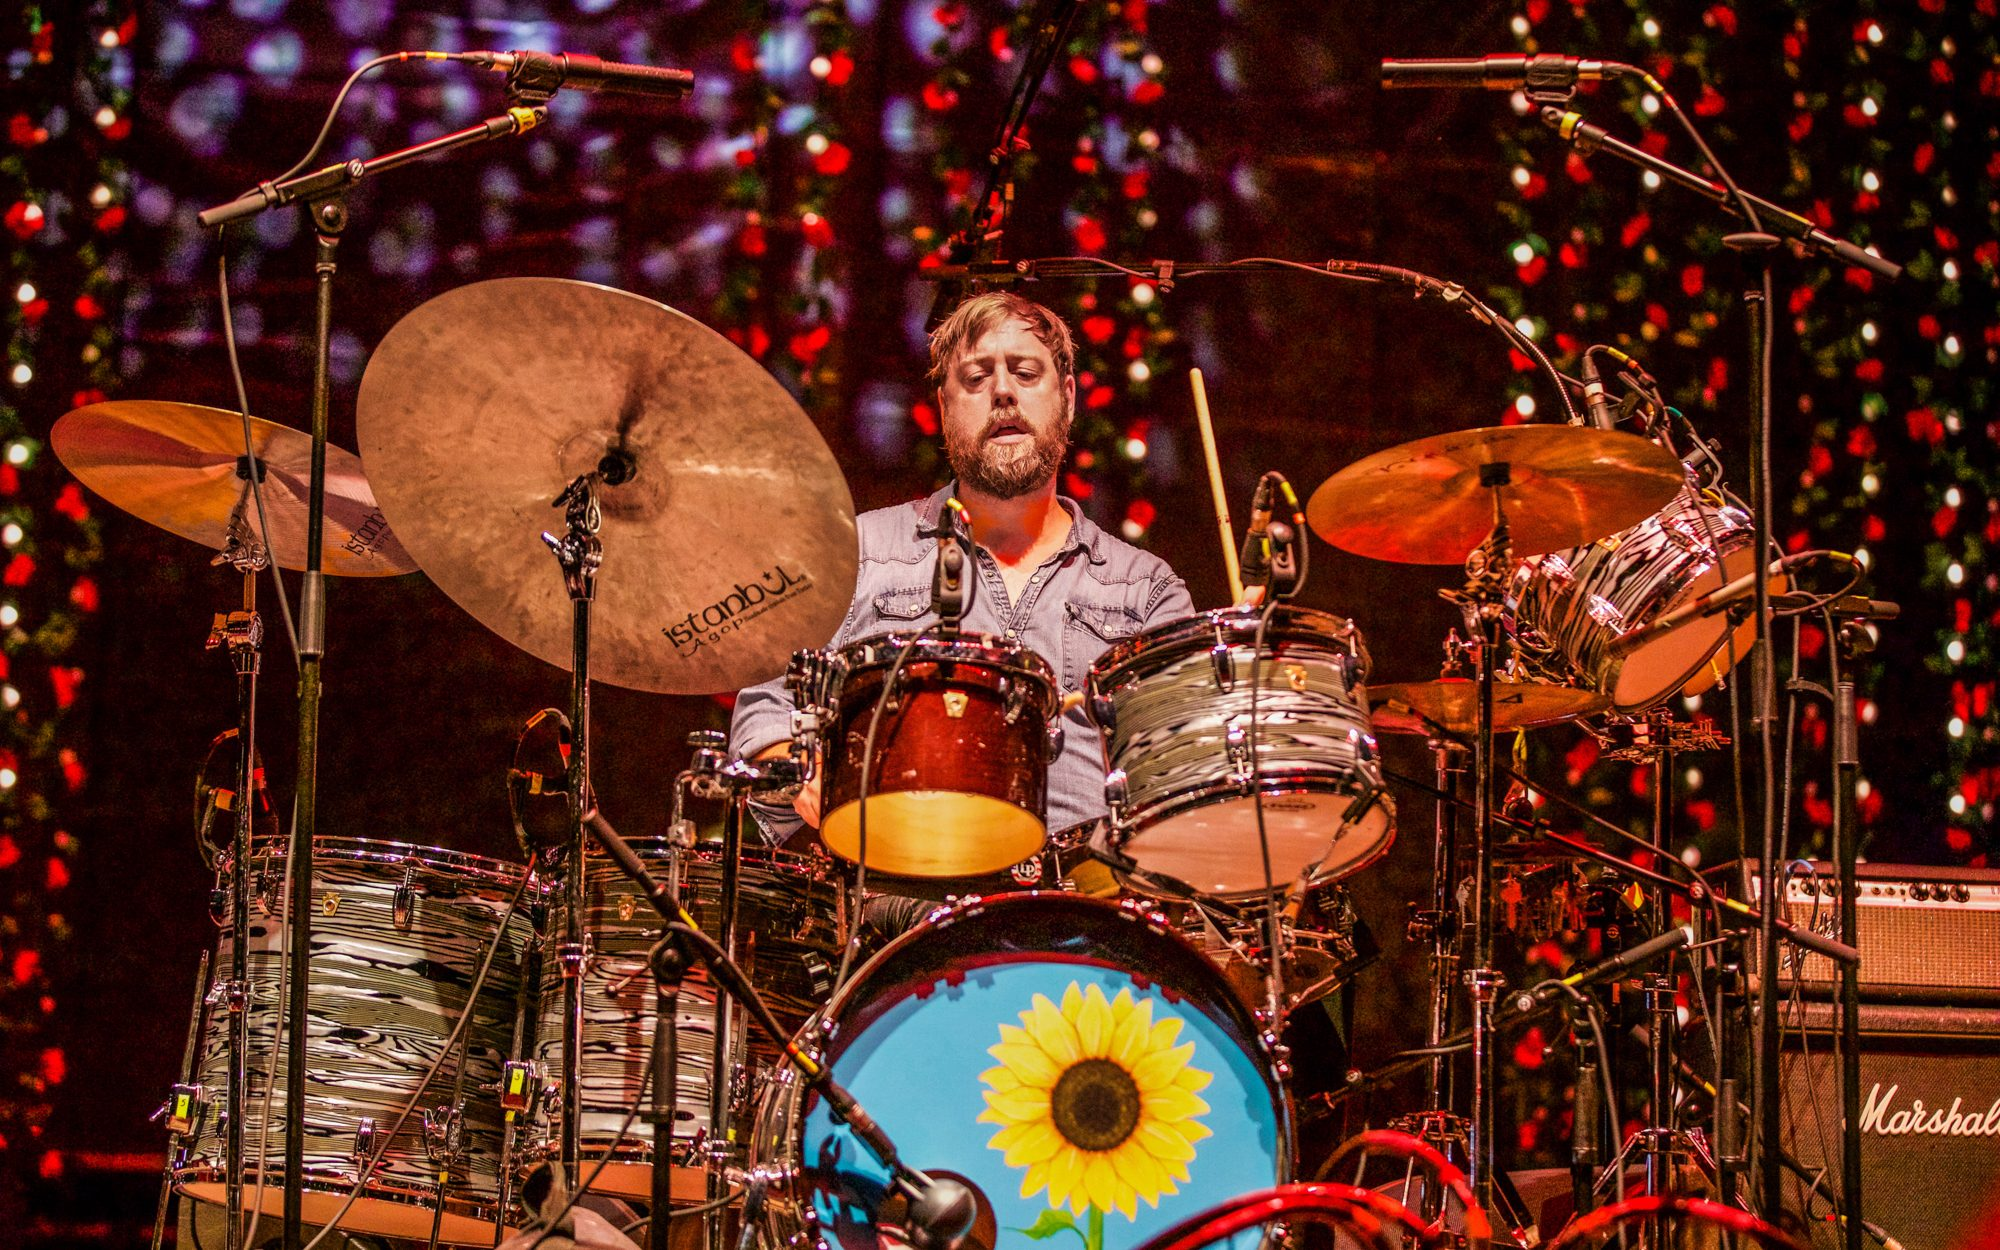 GALLERY: Joe Russo's Almost Dead Celebrates 9 Shows at Westville Music Bowl